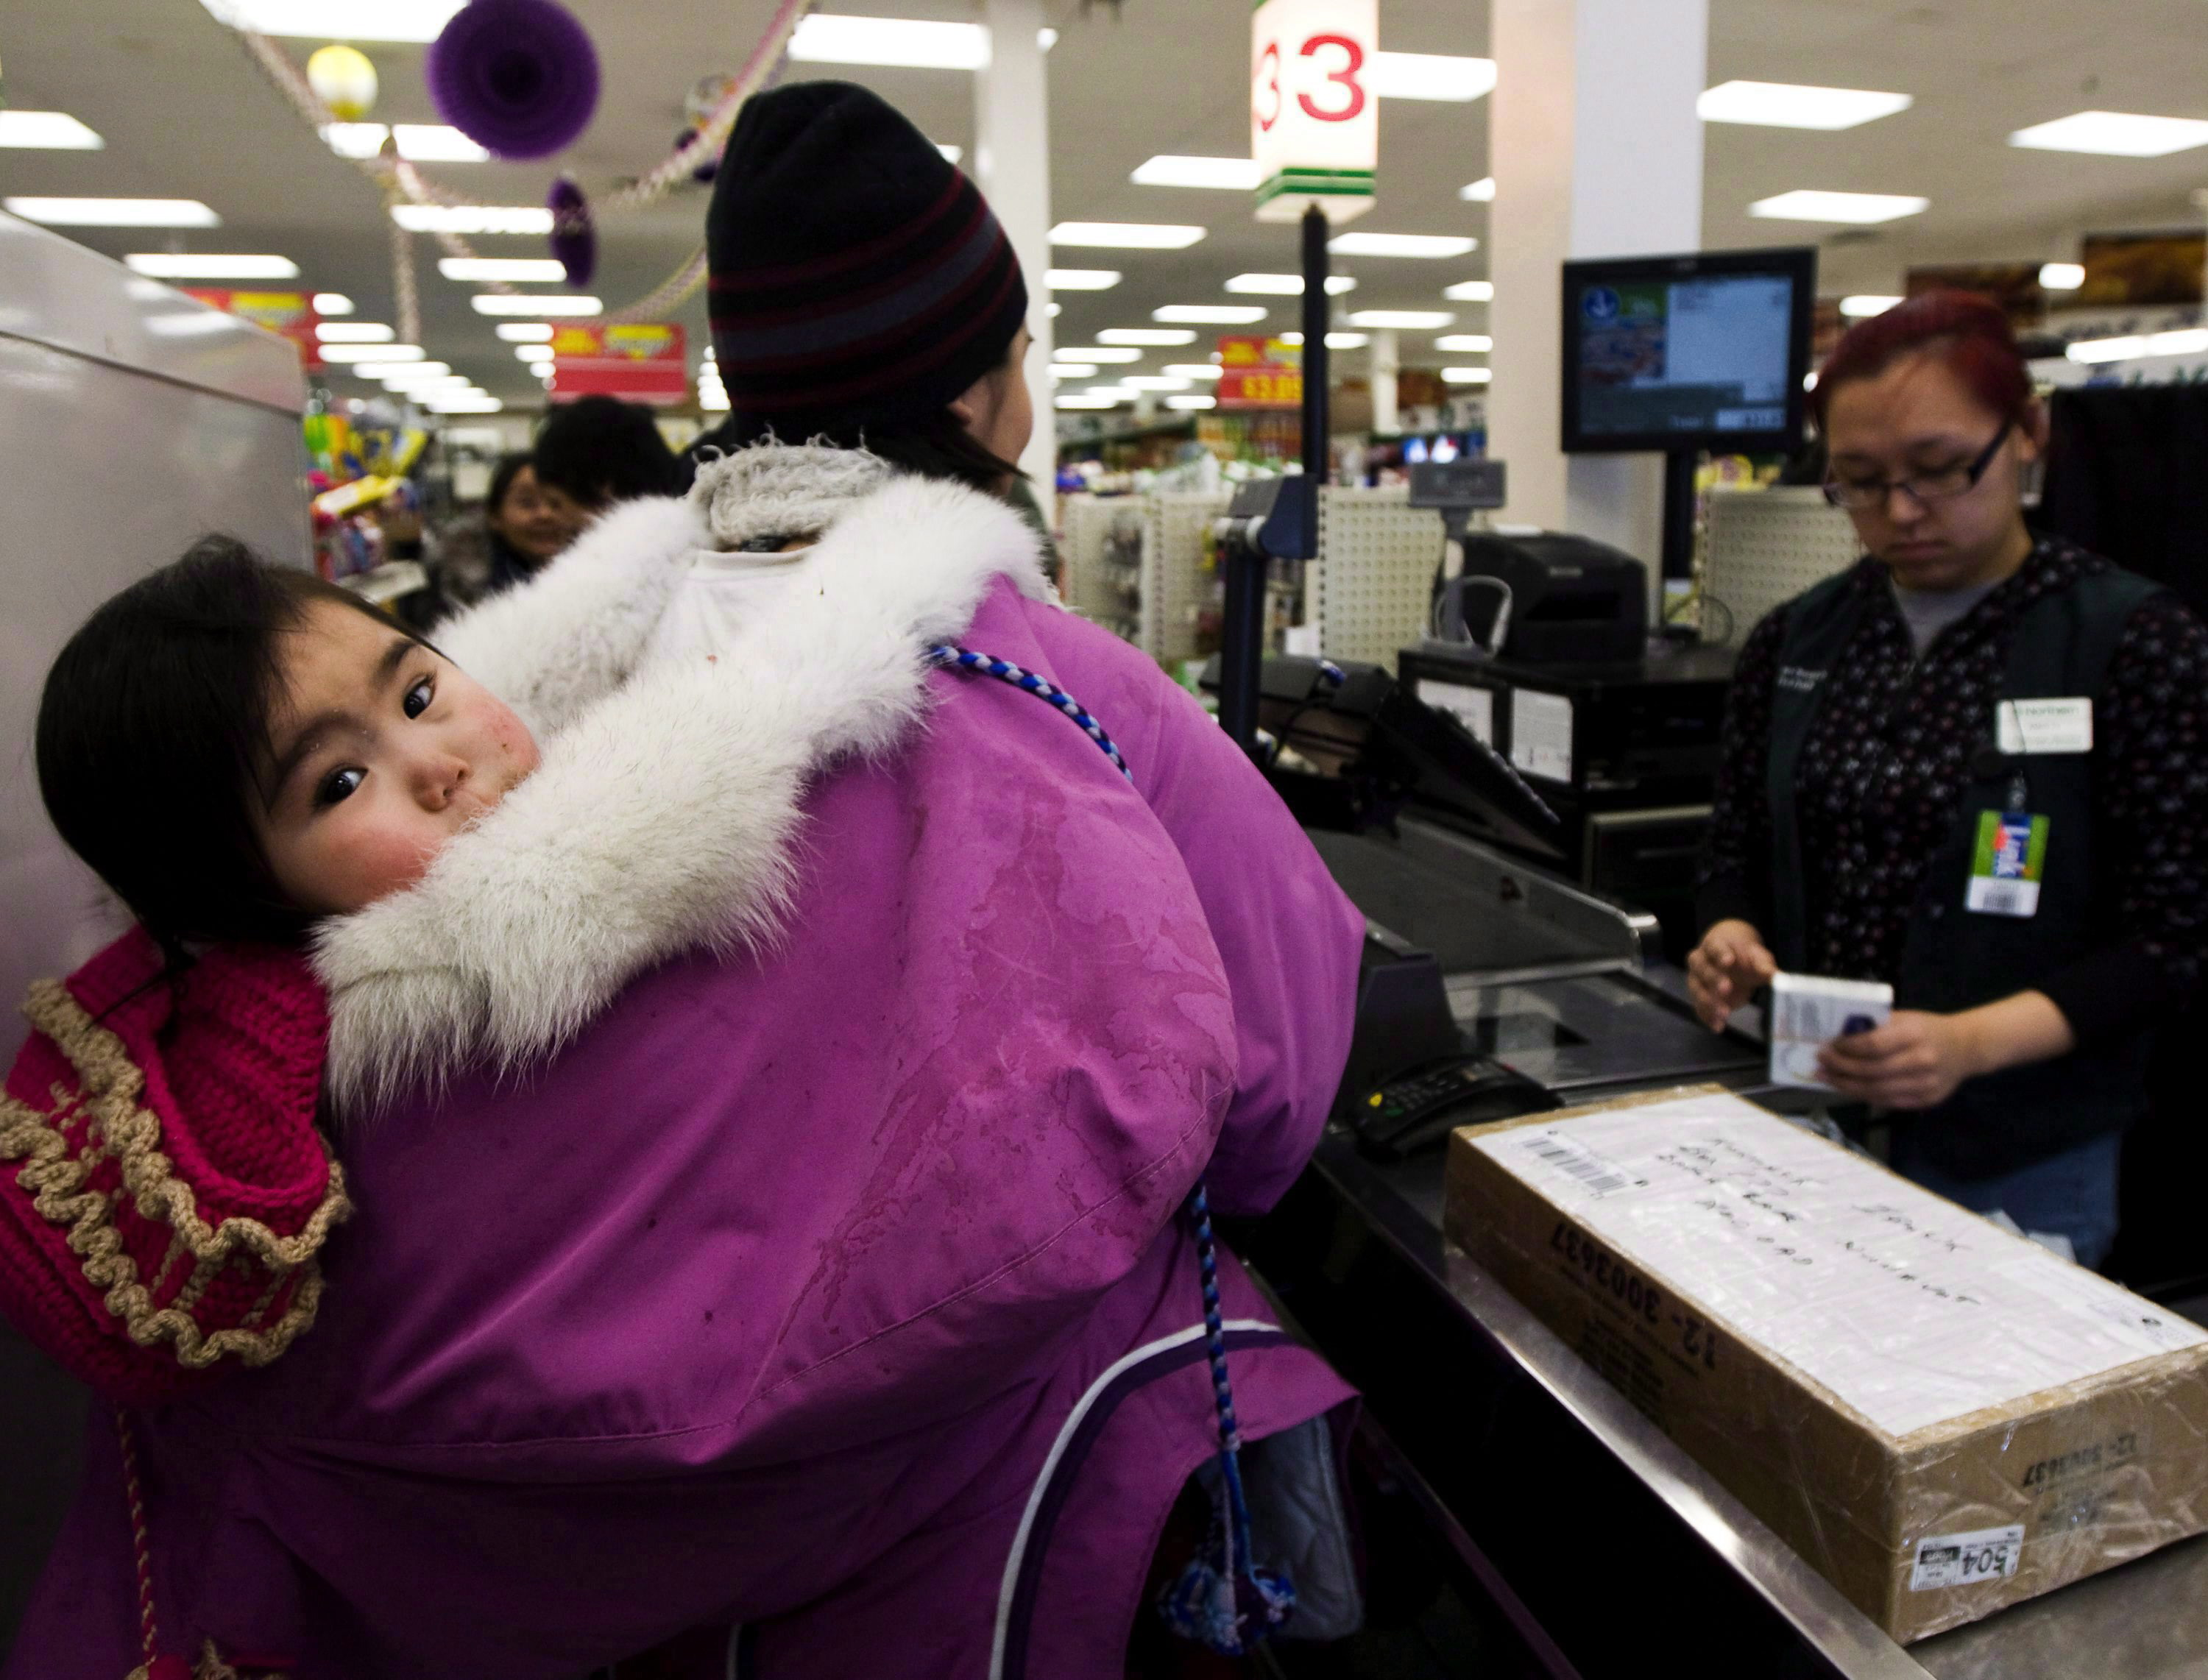 Pauline Kadjuk, 1, is carried in a Amautik by her mother Brittany Ikulik, middle, while paying for groceries at the Northern store in the small town of Baker Lake, Nunavut on March 25, 2009.